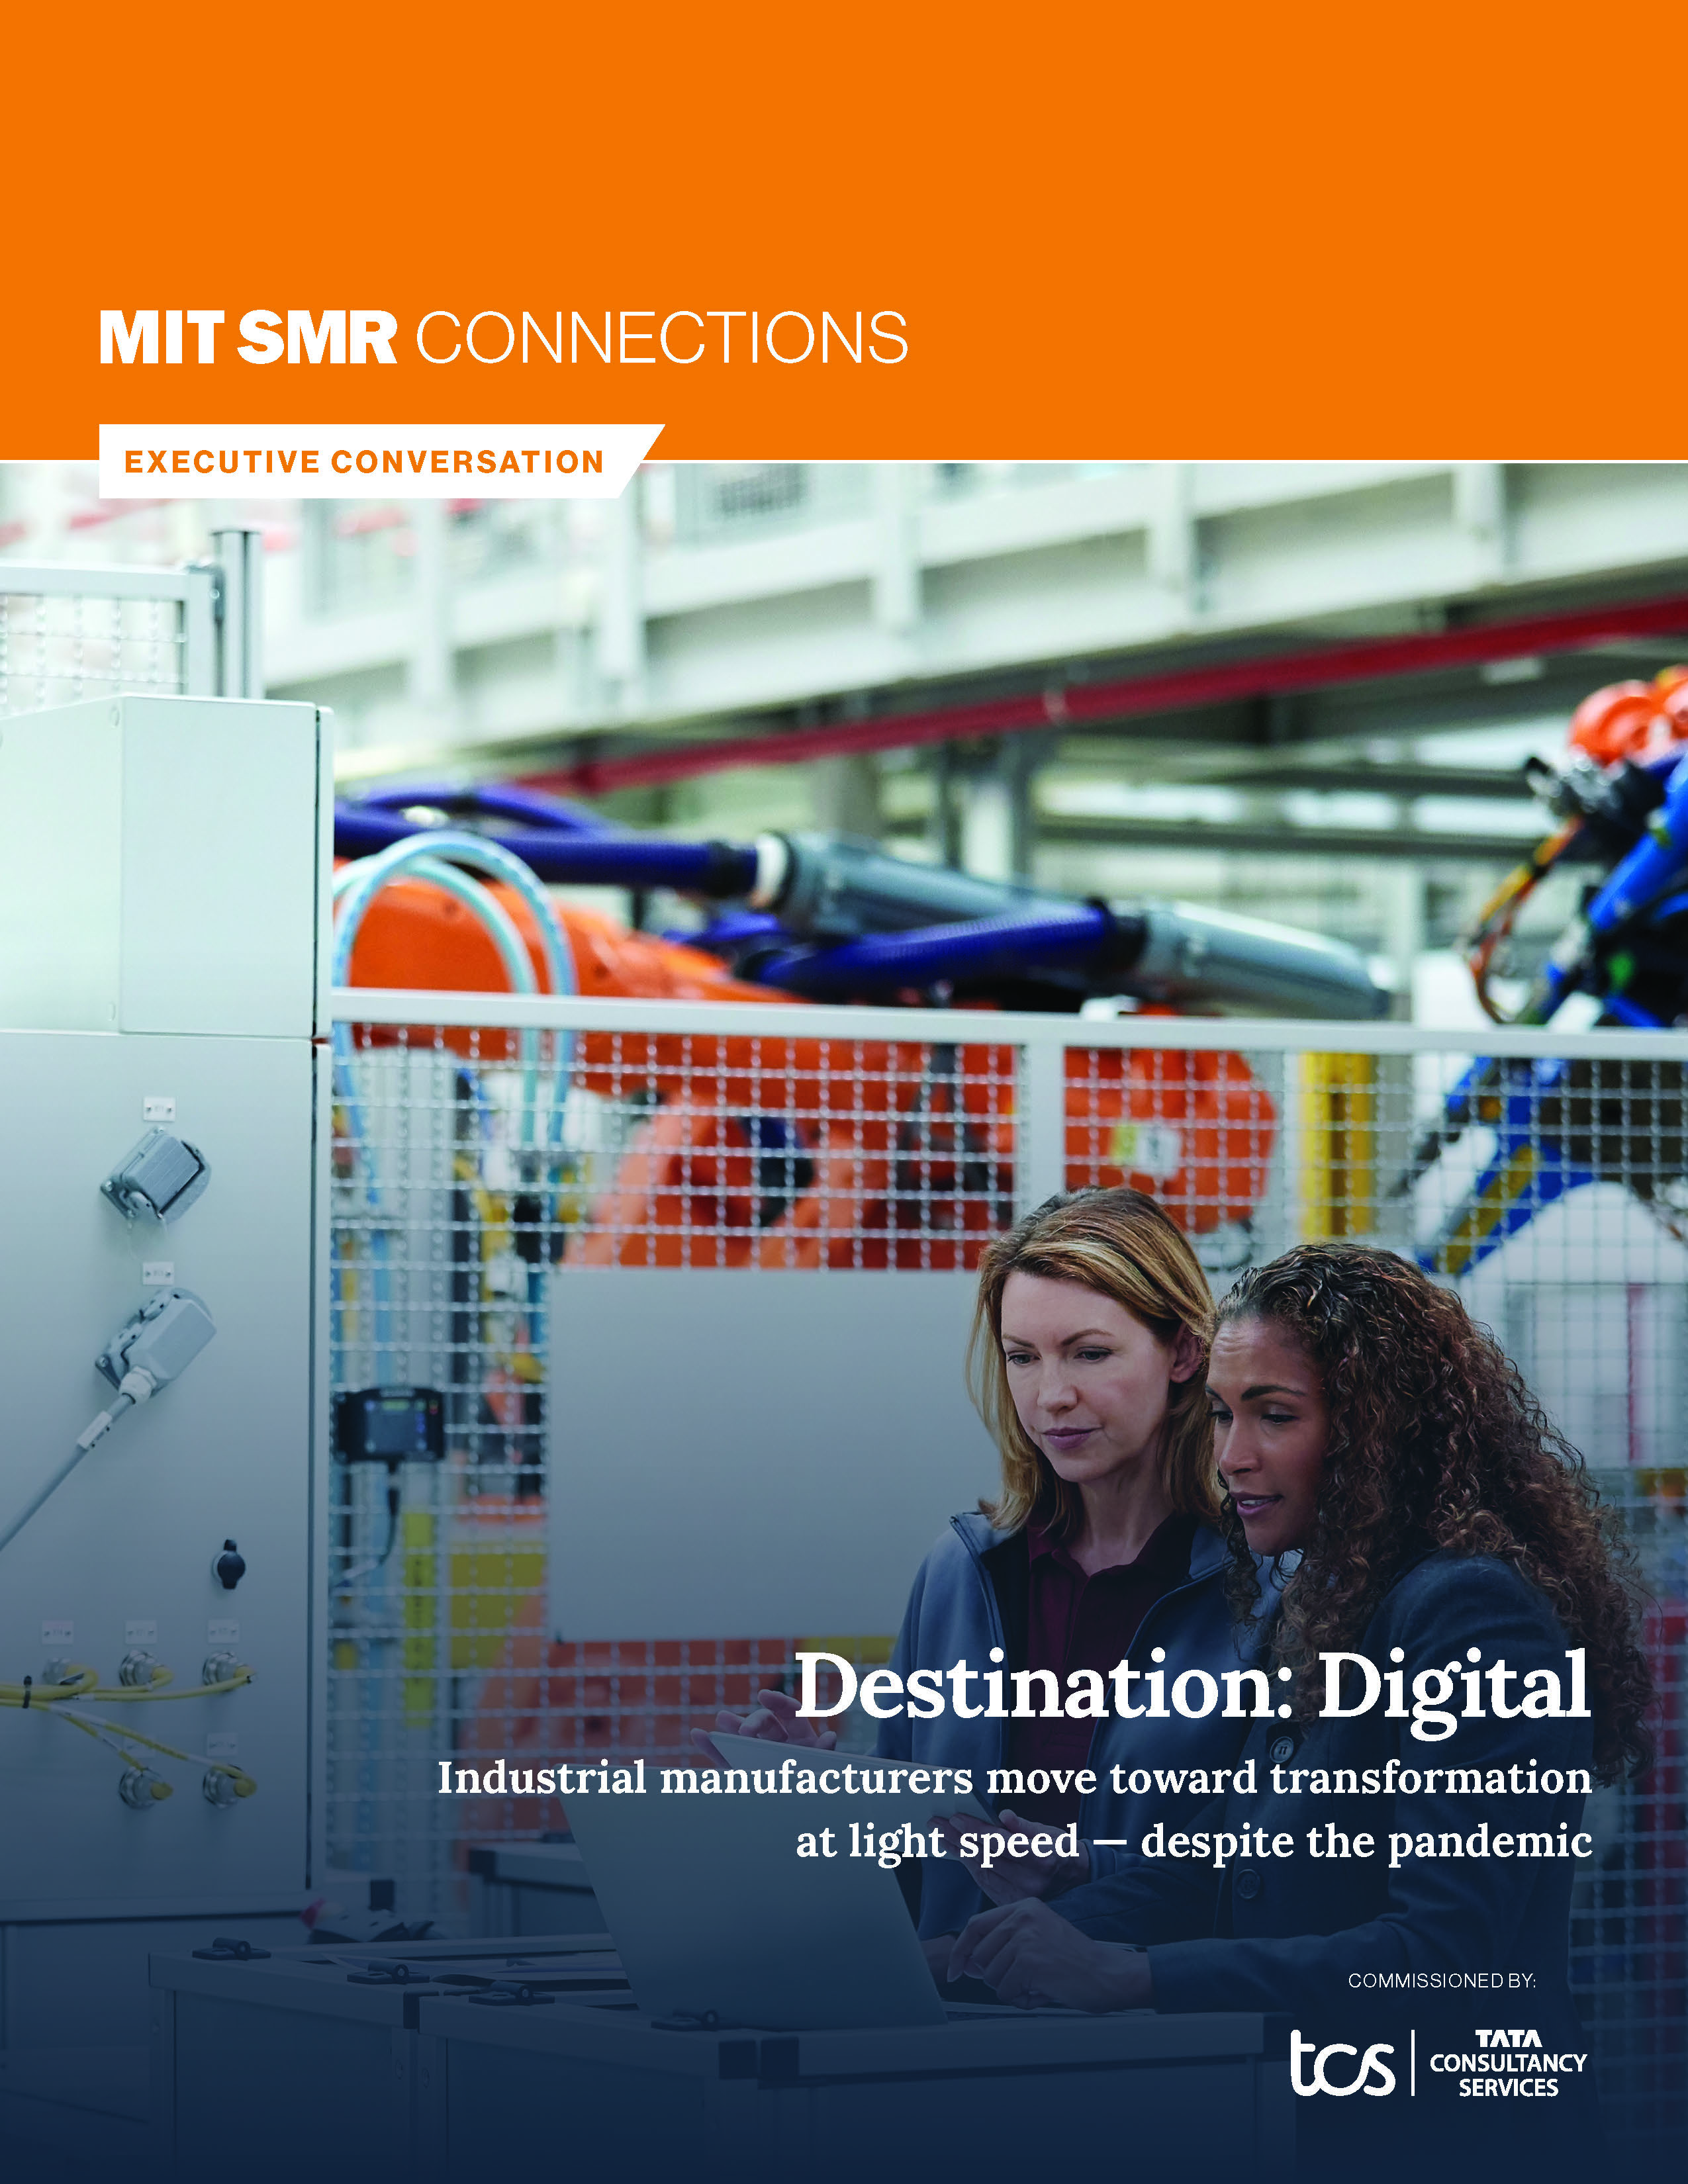 Digital Transformation in Industrial Manufacturing: Essential, Not Optional